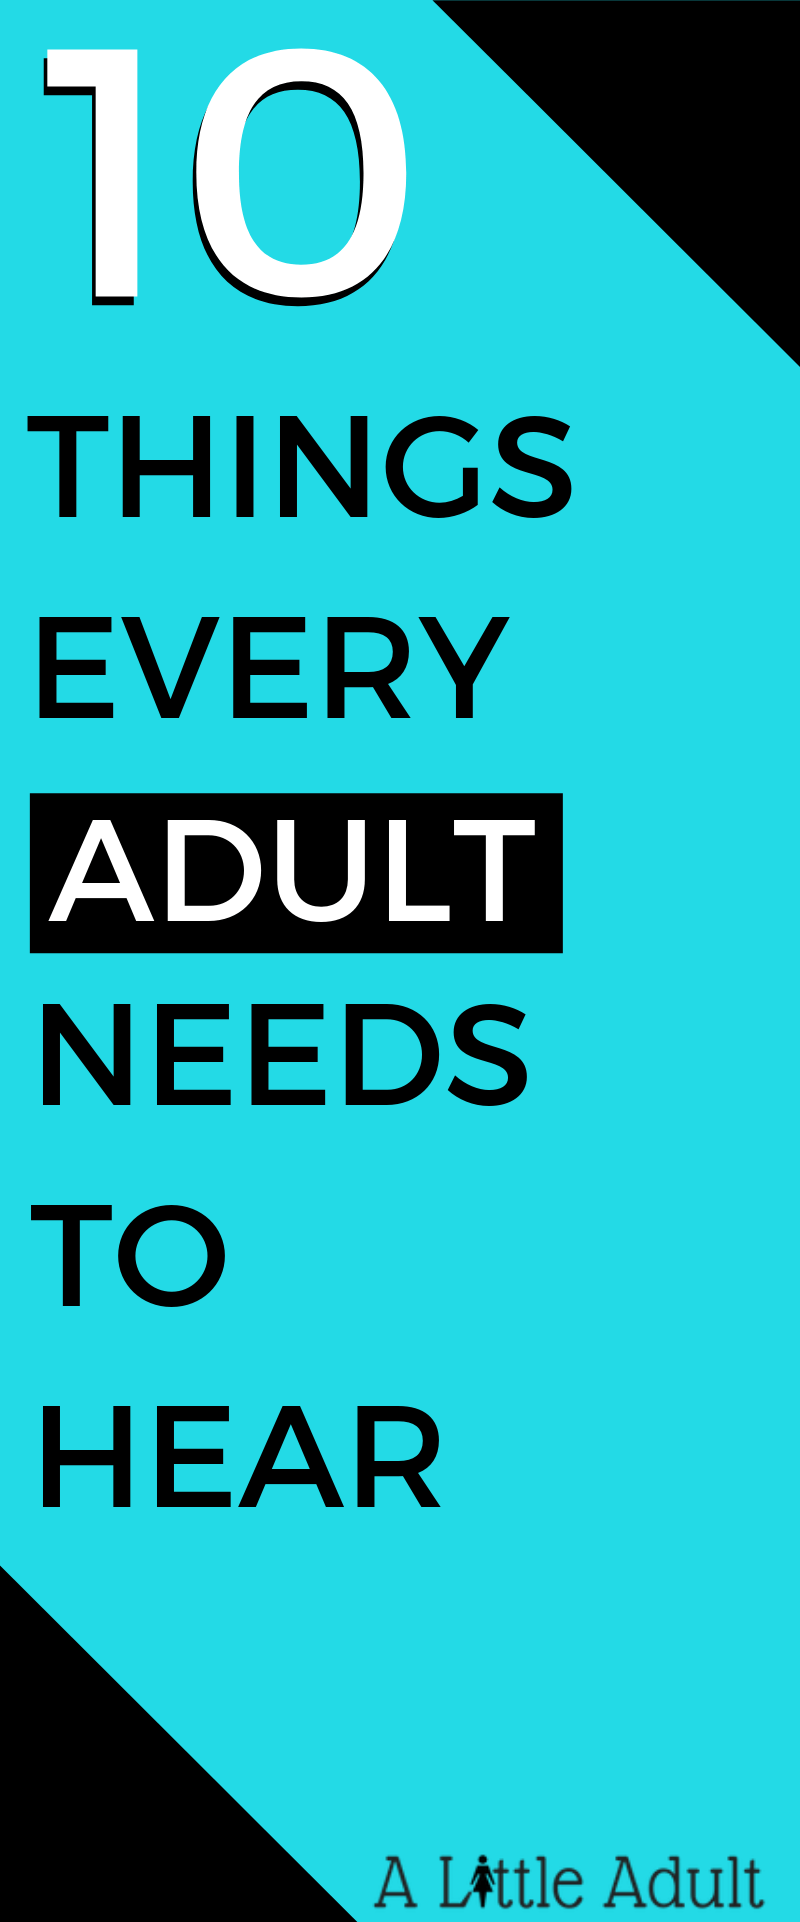 10 PIECES OF ADVICE EVERY ADULT NEEDS TO HEAR